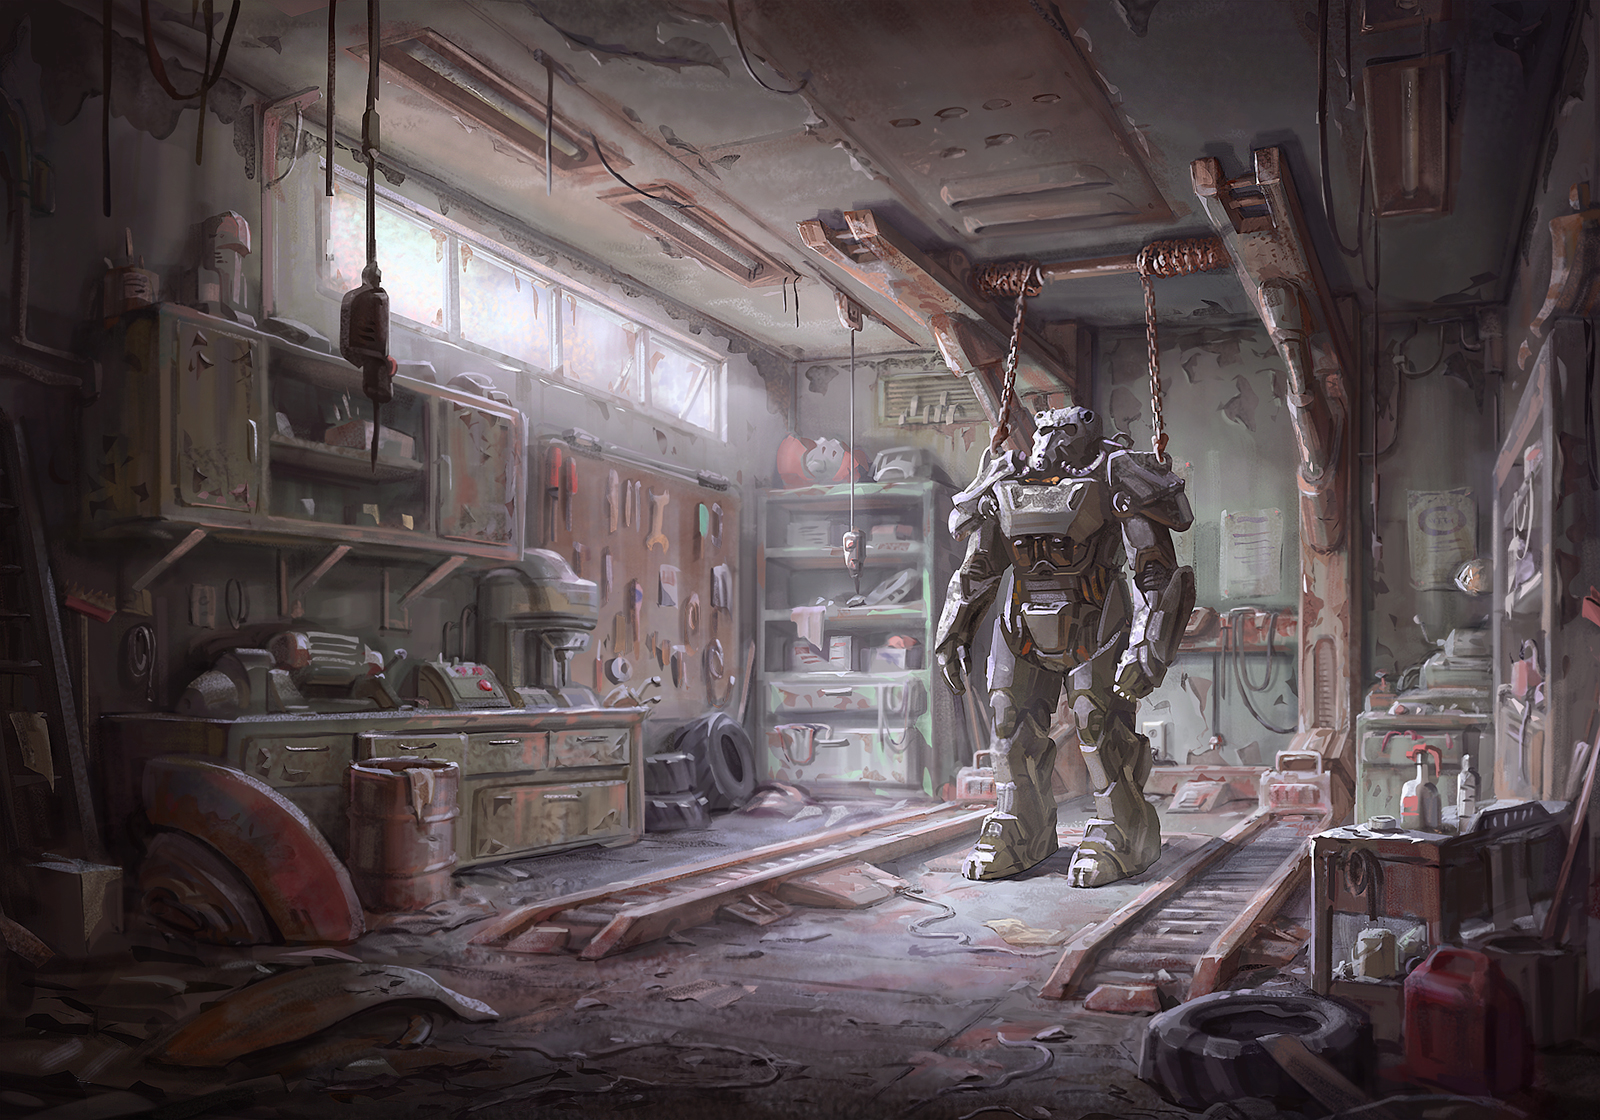 have-a-gander-at-fallout-4-fine-art-prints-148603172397.jpg